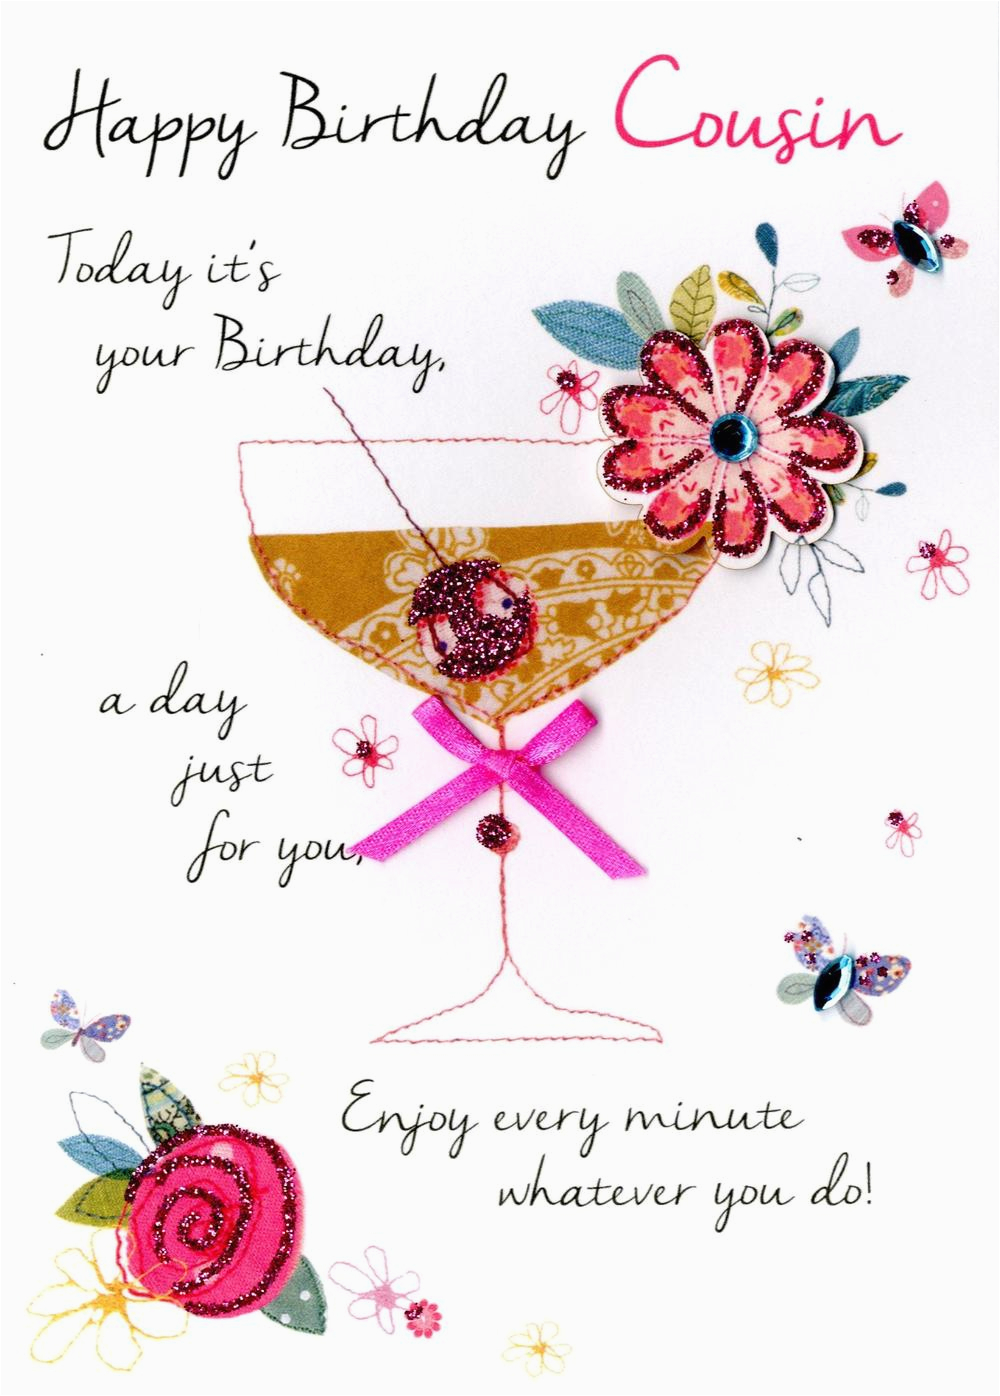 kcsnjt049 female cousin happy birthday greeting card second nature just to say cards